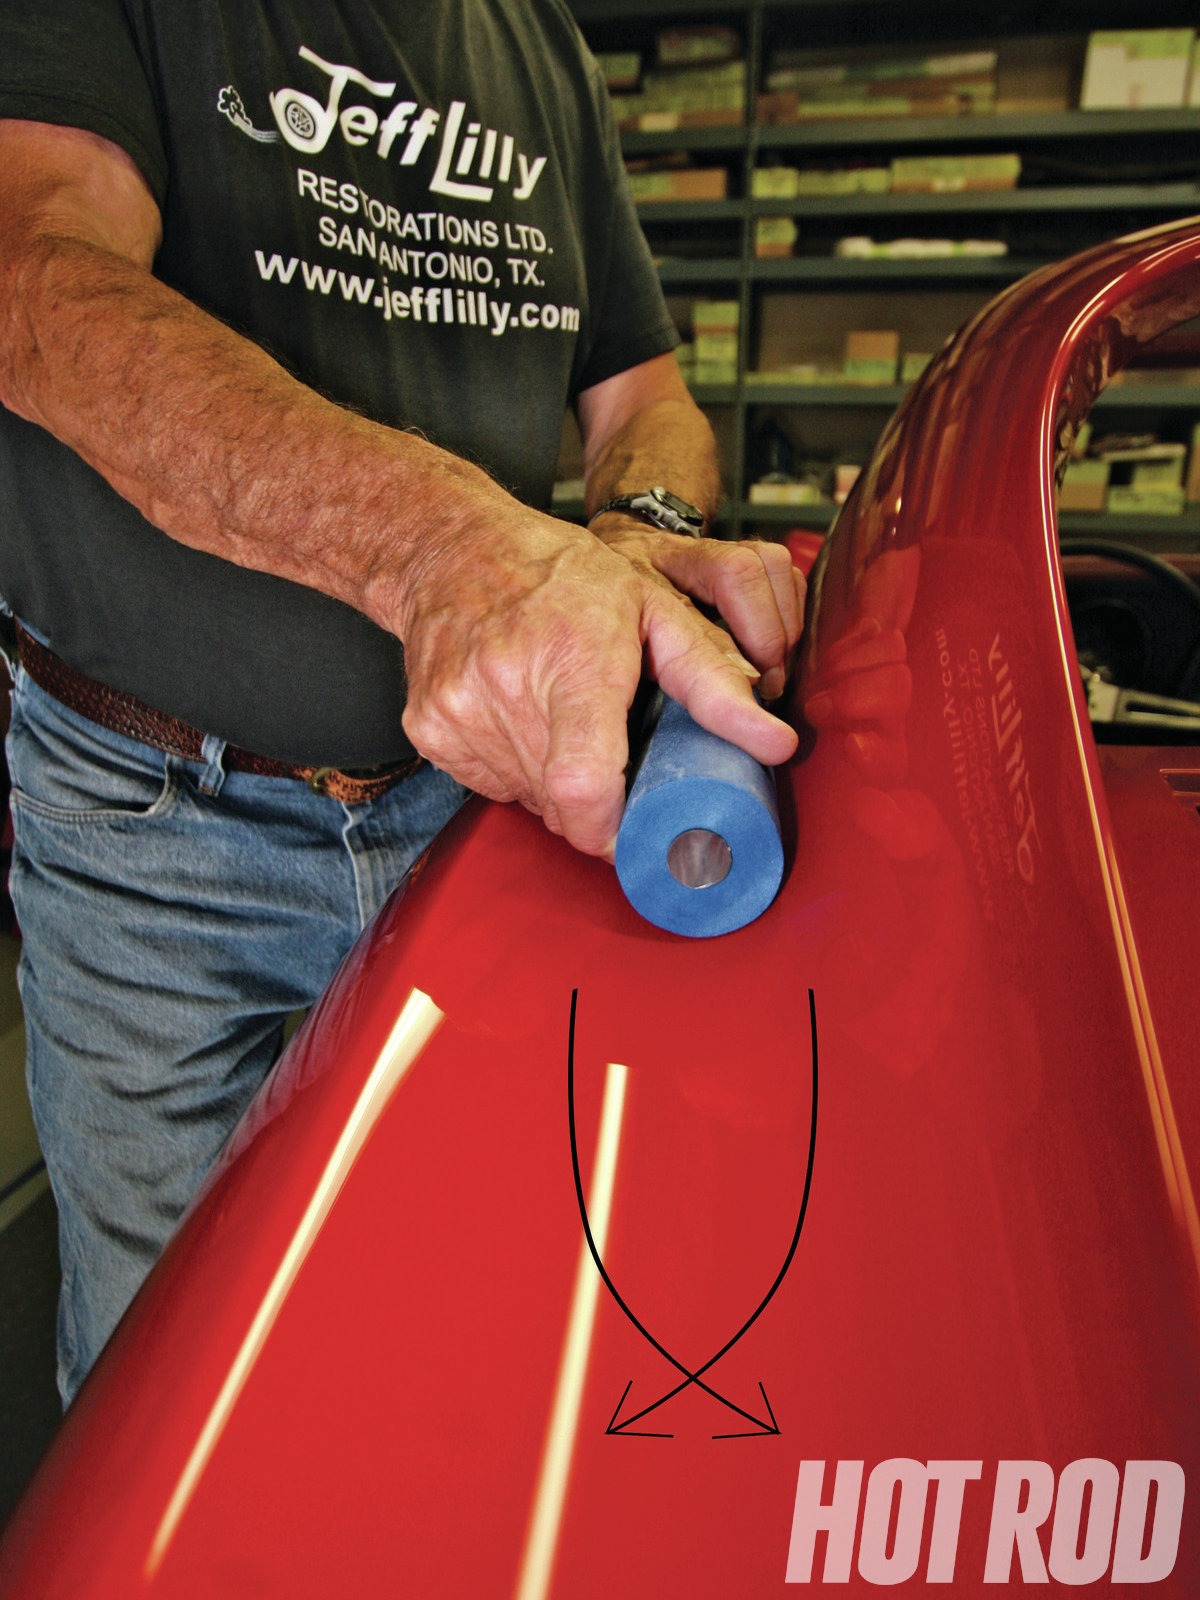 The concave section where the roof meets the quarter-panel on a lot of bodies, such as this Corvette, is where this foam block shines. The arrows also show the rotation needed to achieve the best results. Twist your fingers in this direction while moving your arms back and forth on the panels in 18- to 24-inch-long strokes. Everything is done in crisscross patterns; the difference is how long the stroke is and how tight the crisscross.